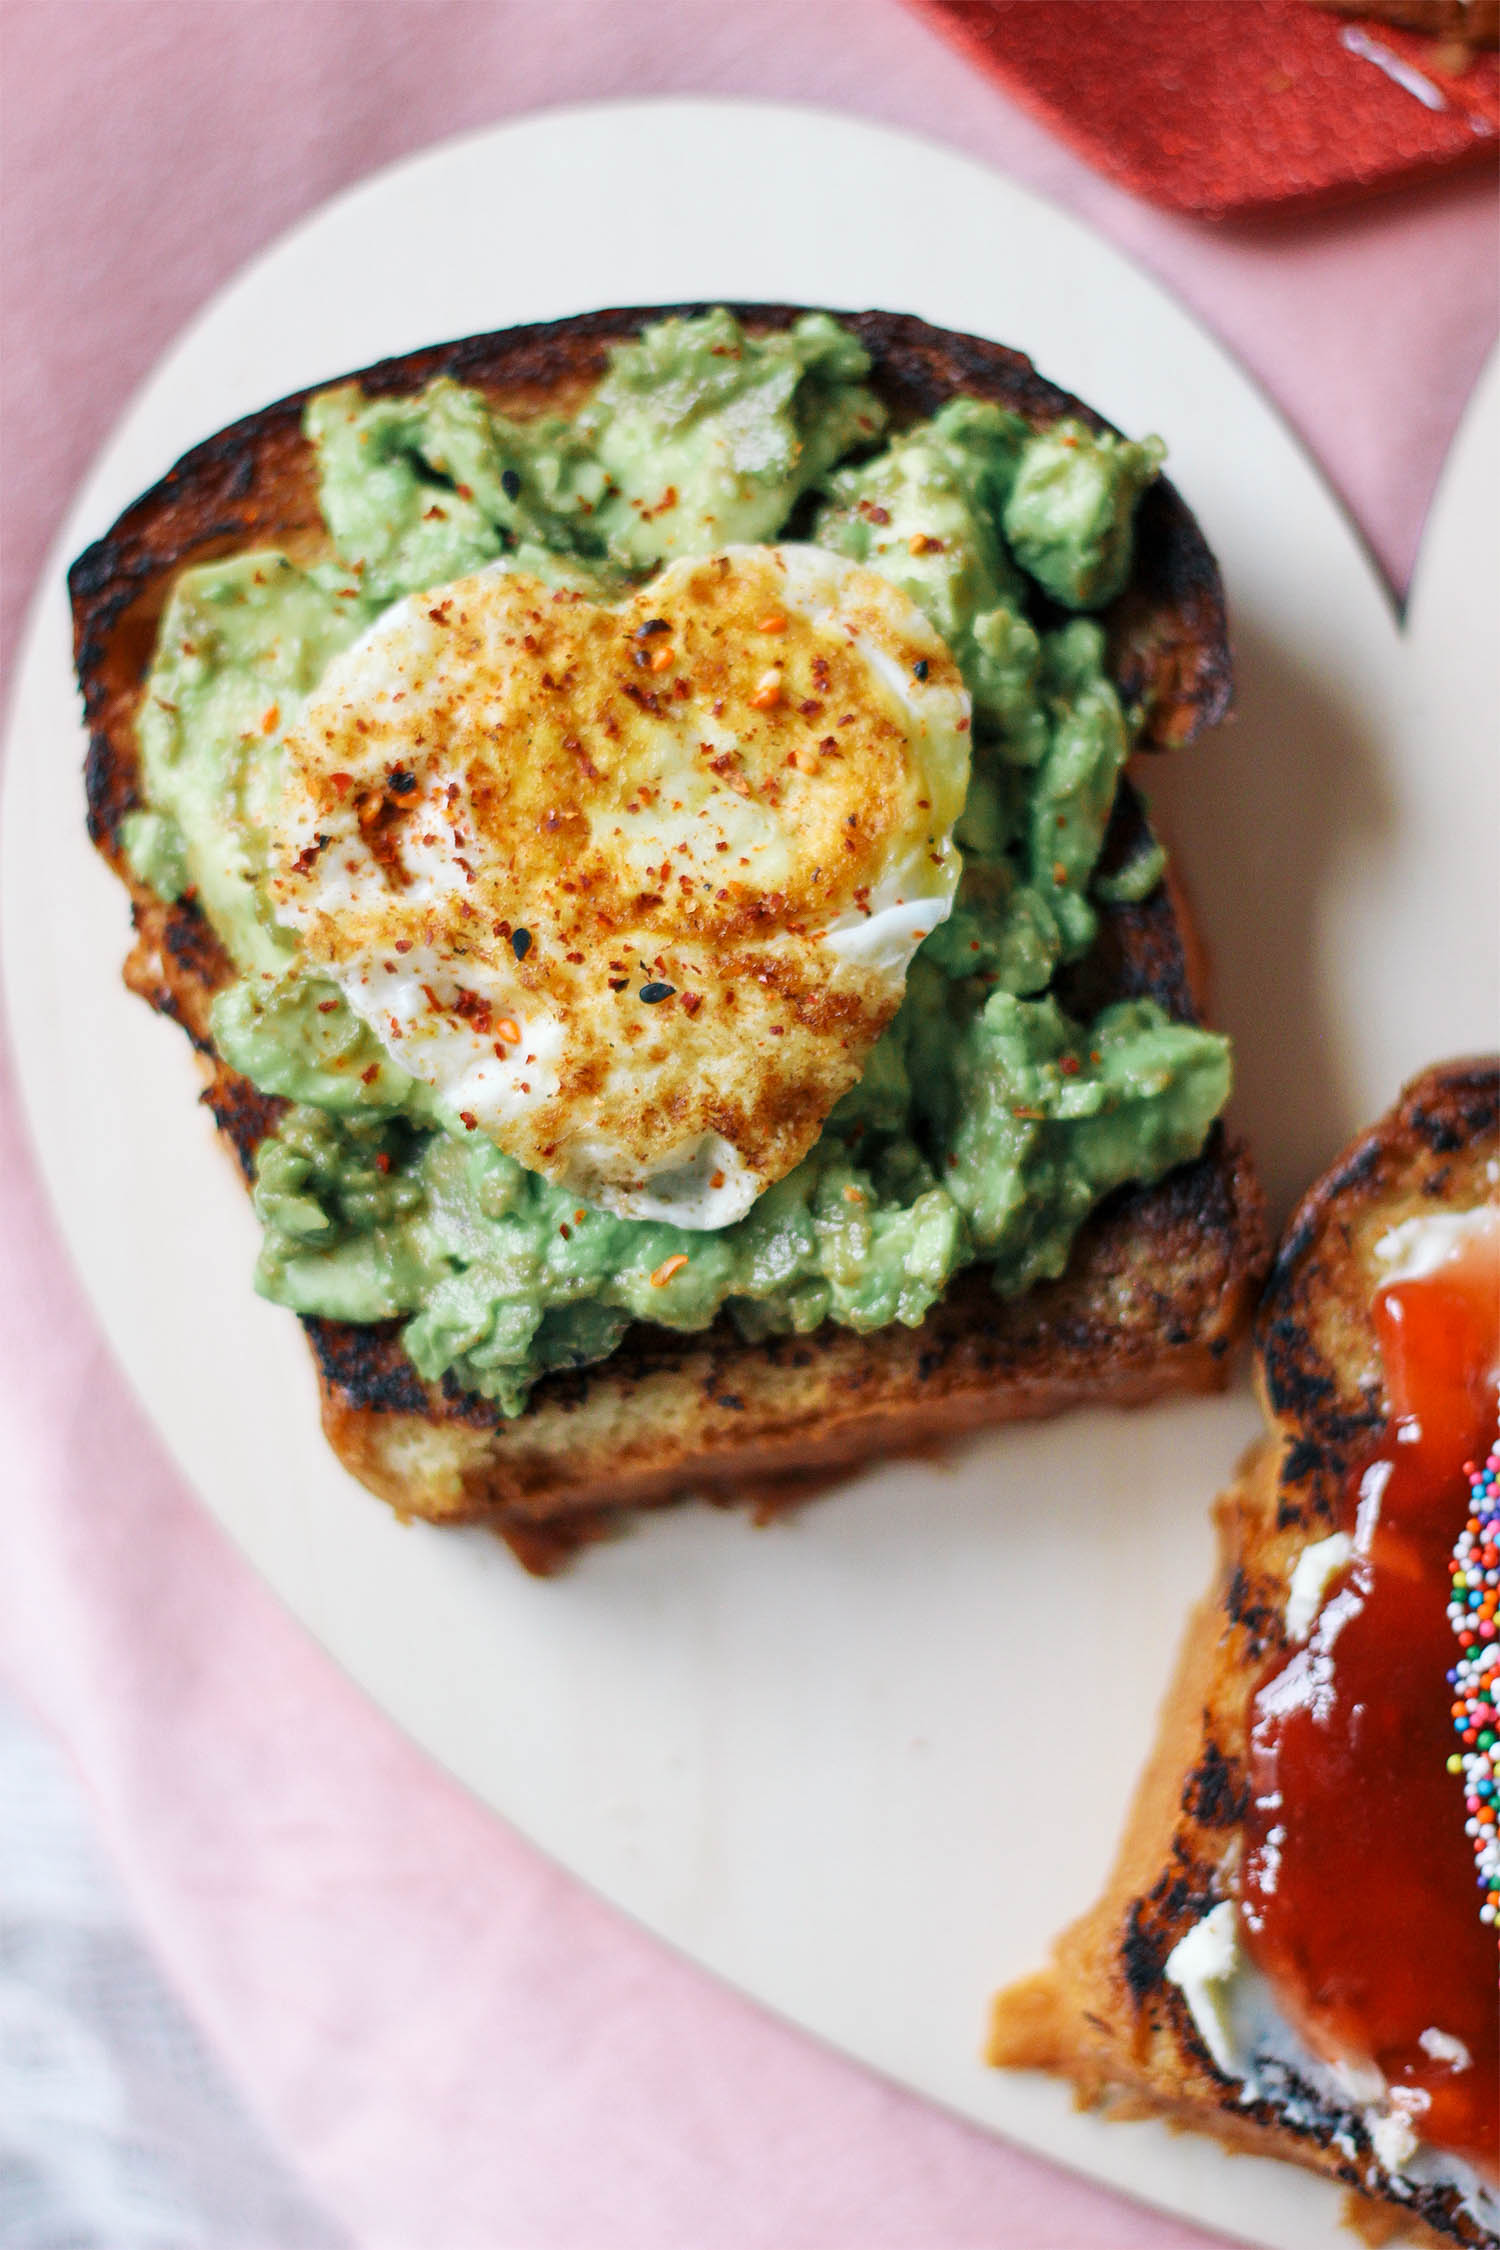 valentines-day-toast-breakfast-in-bed-6-3